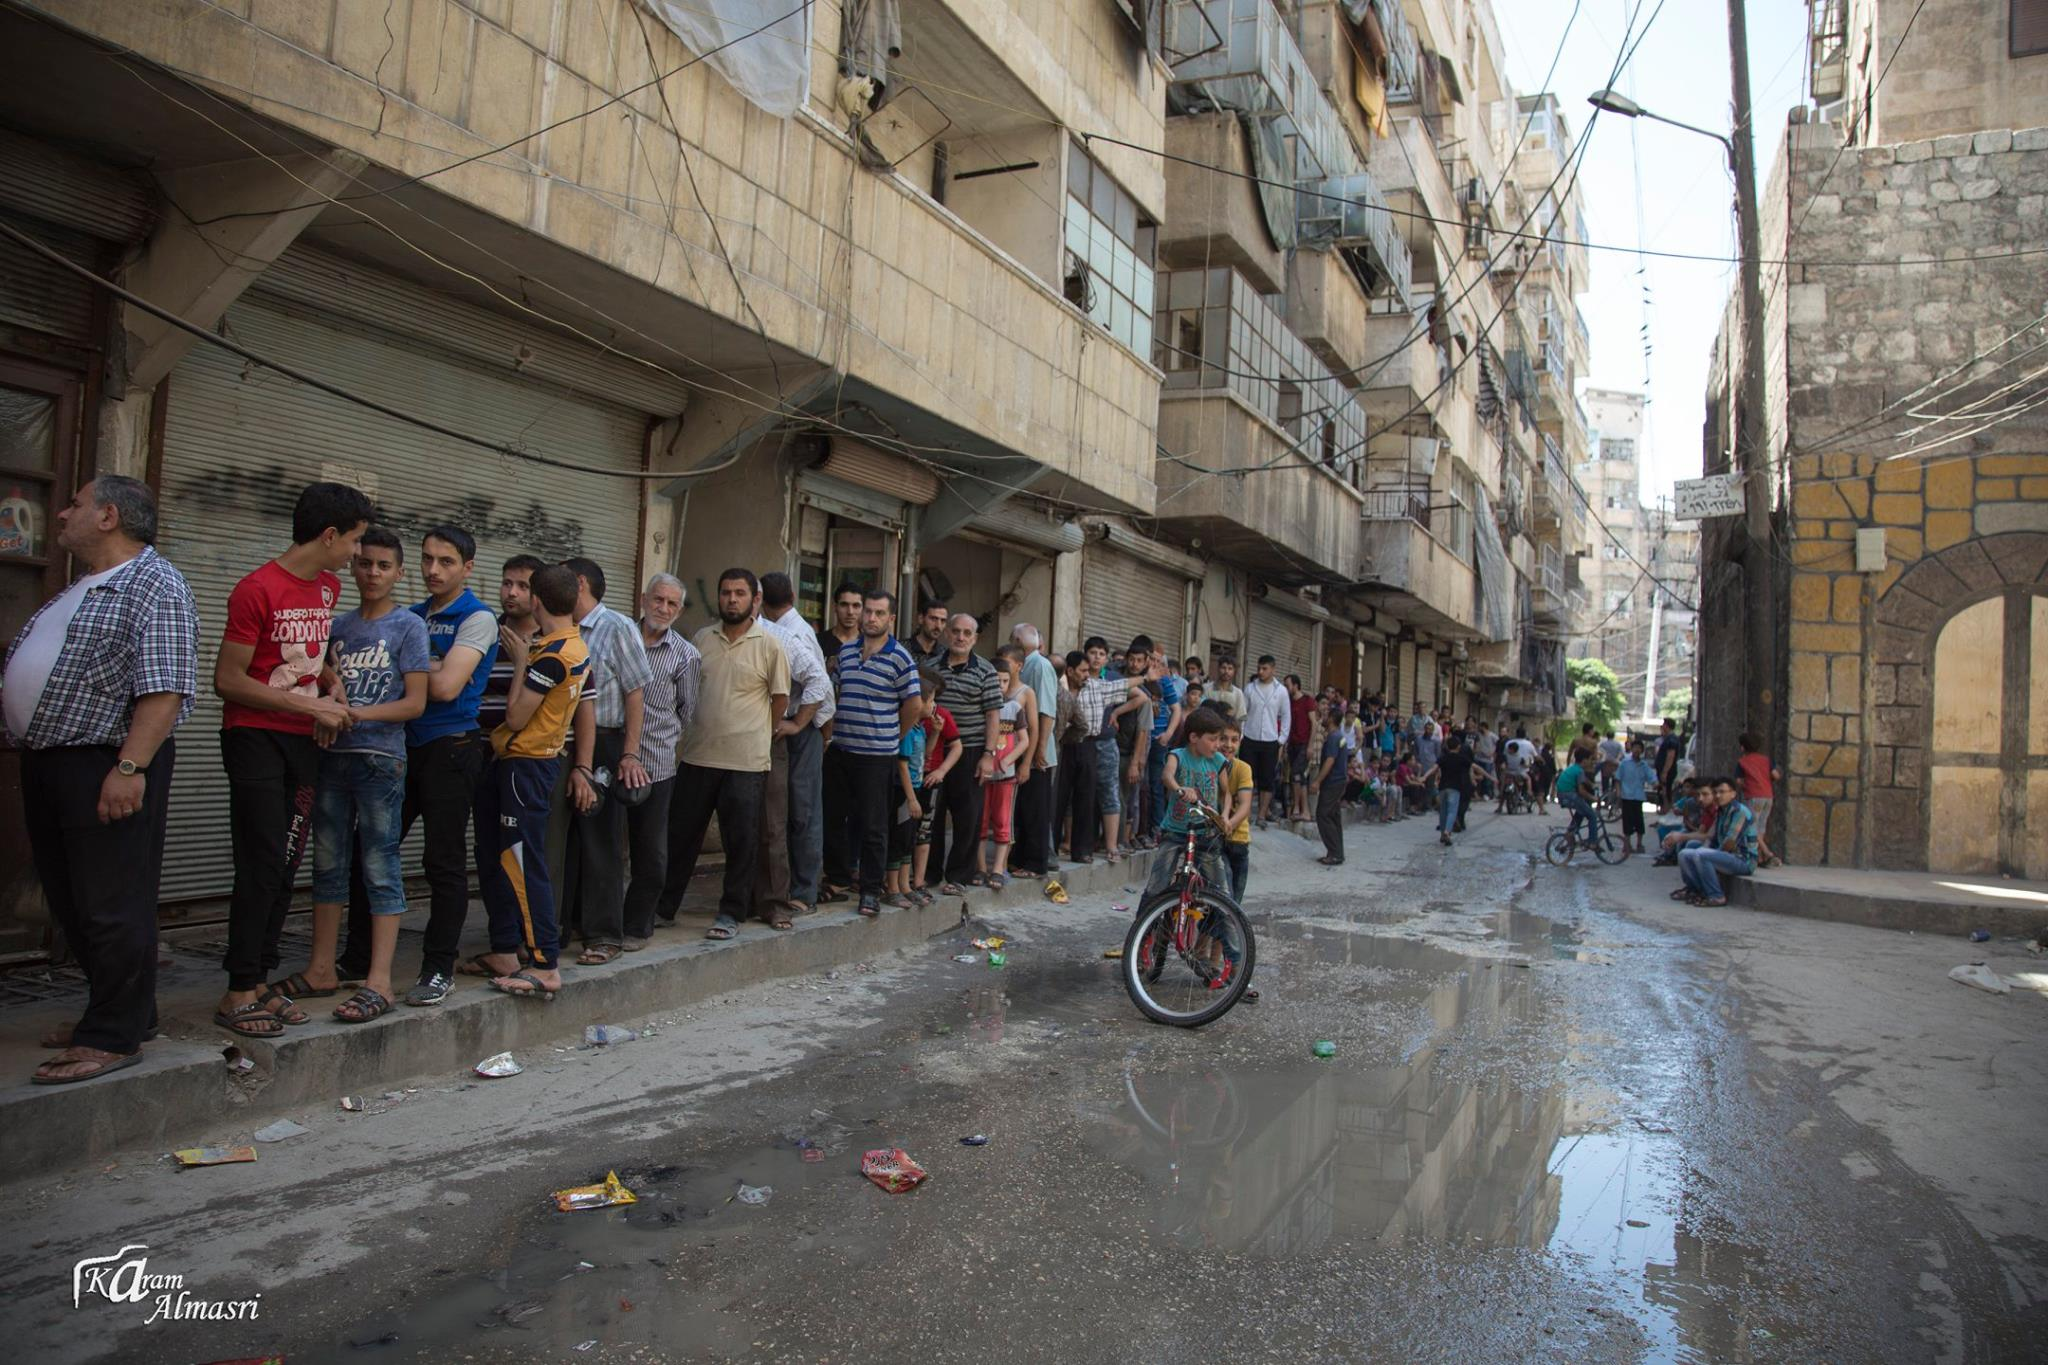 Queuing for Bread aleppo